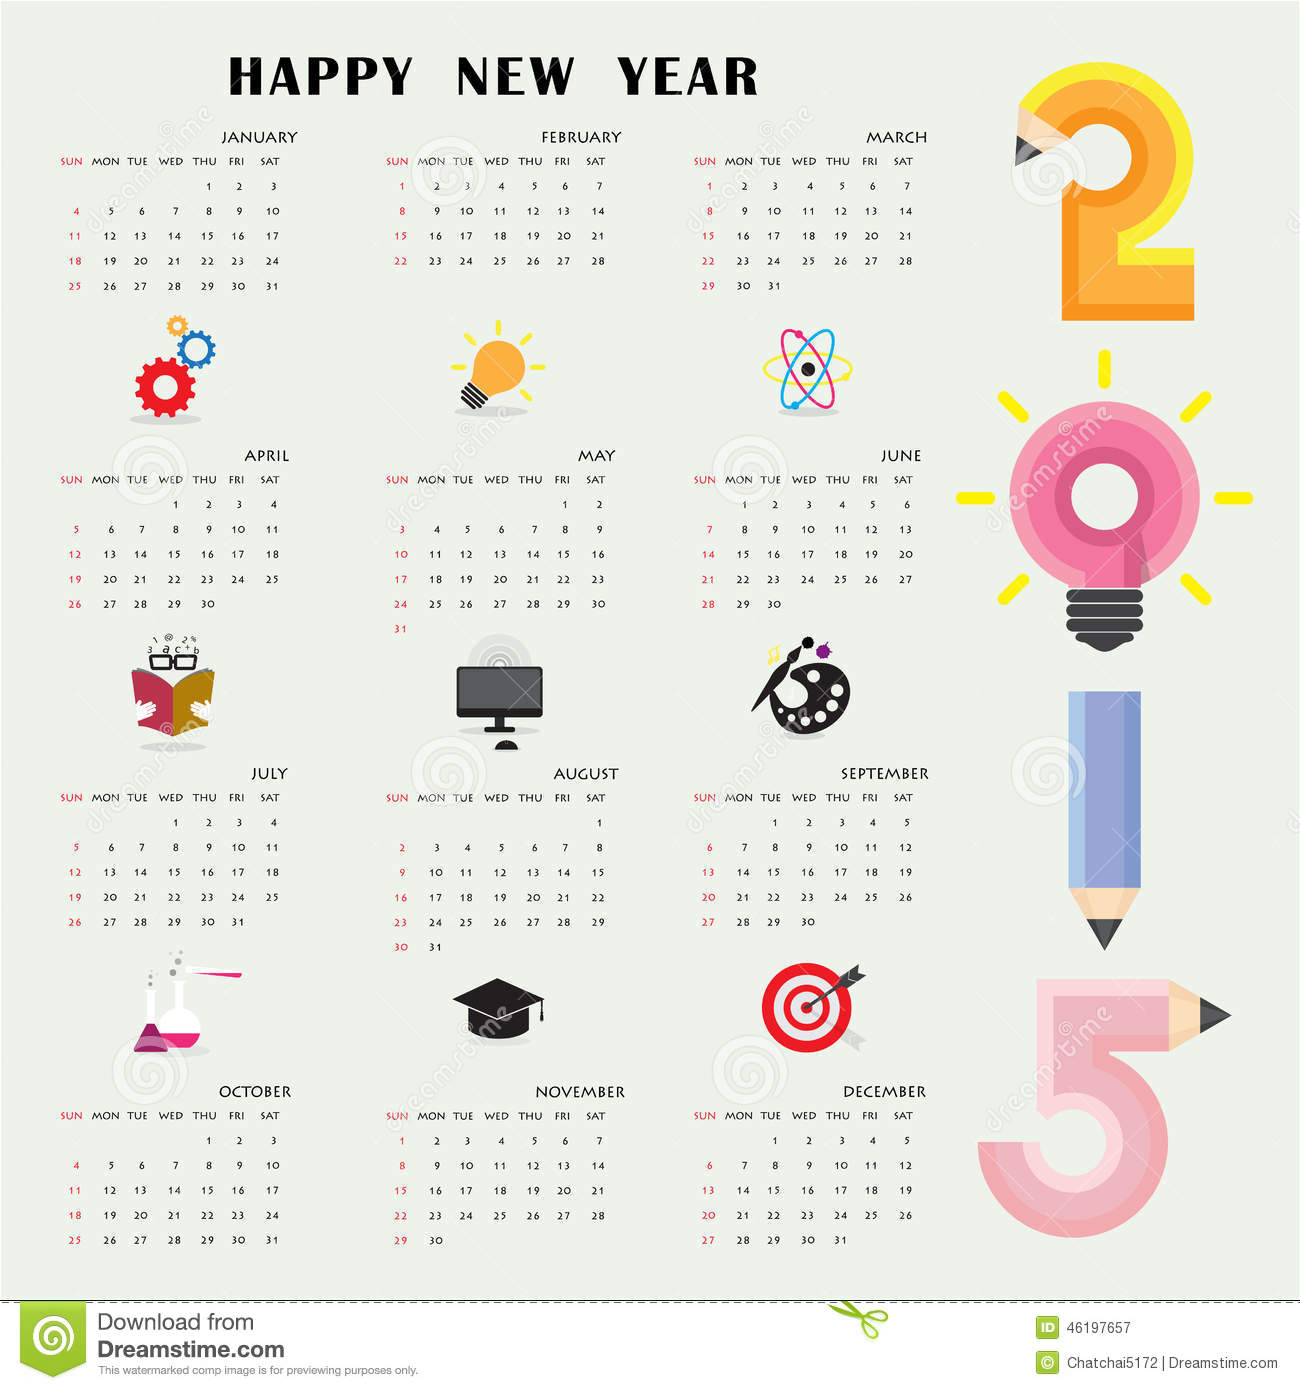 Calendar Templates Creative : Creative calendar design template with business or